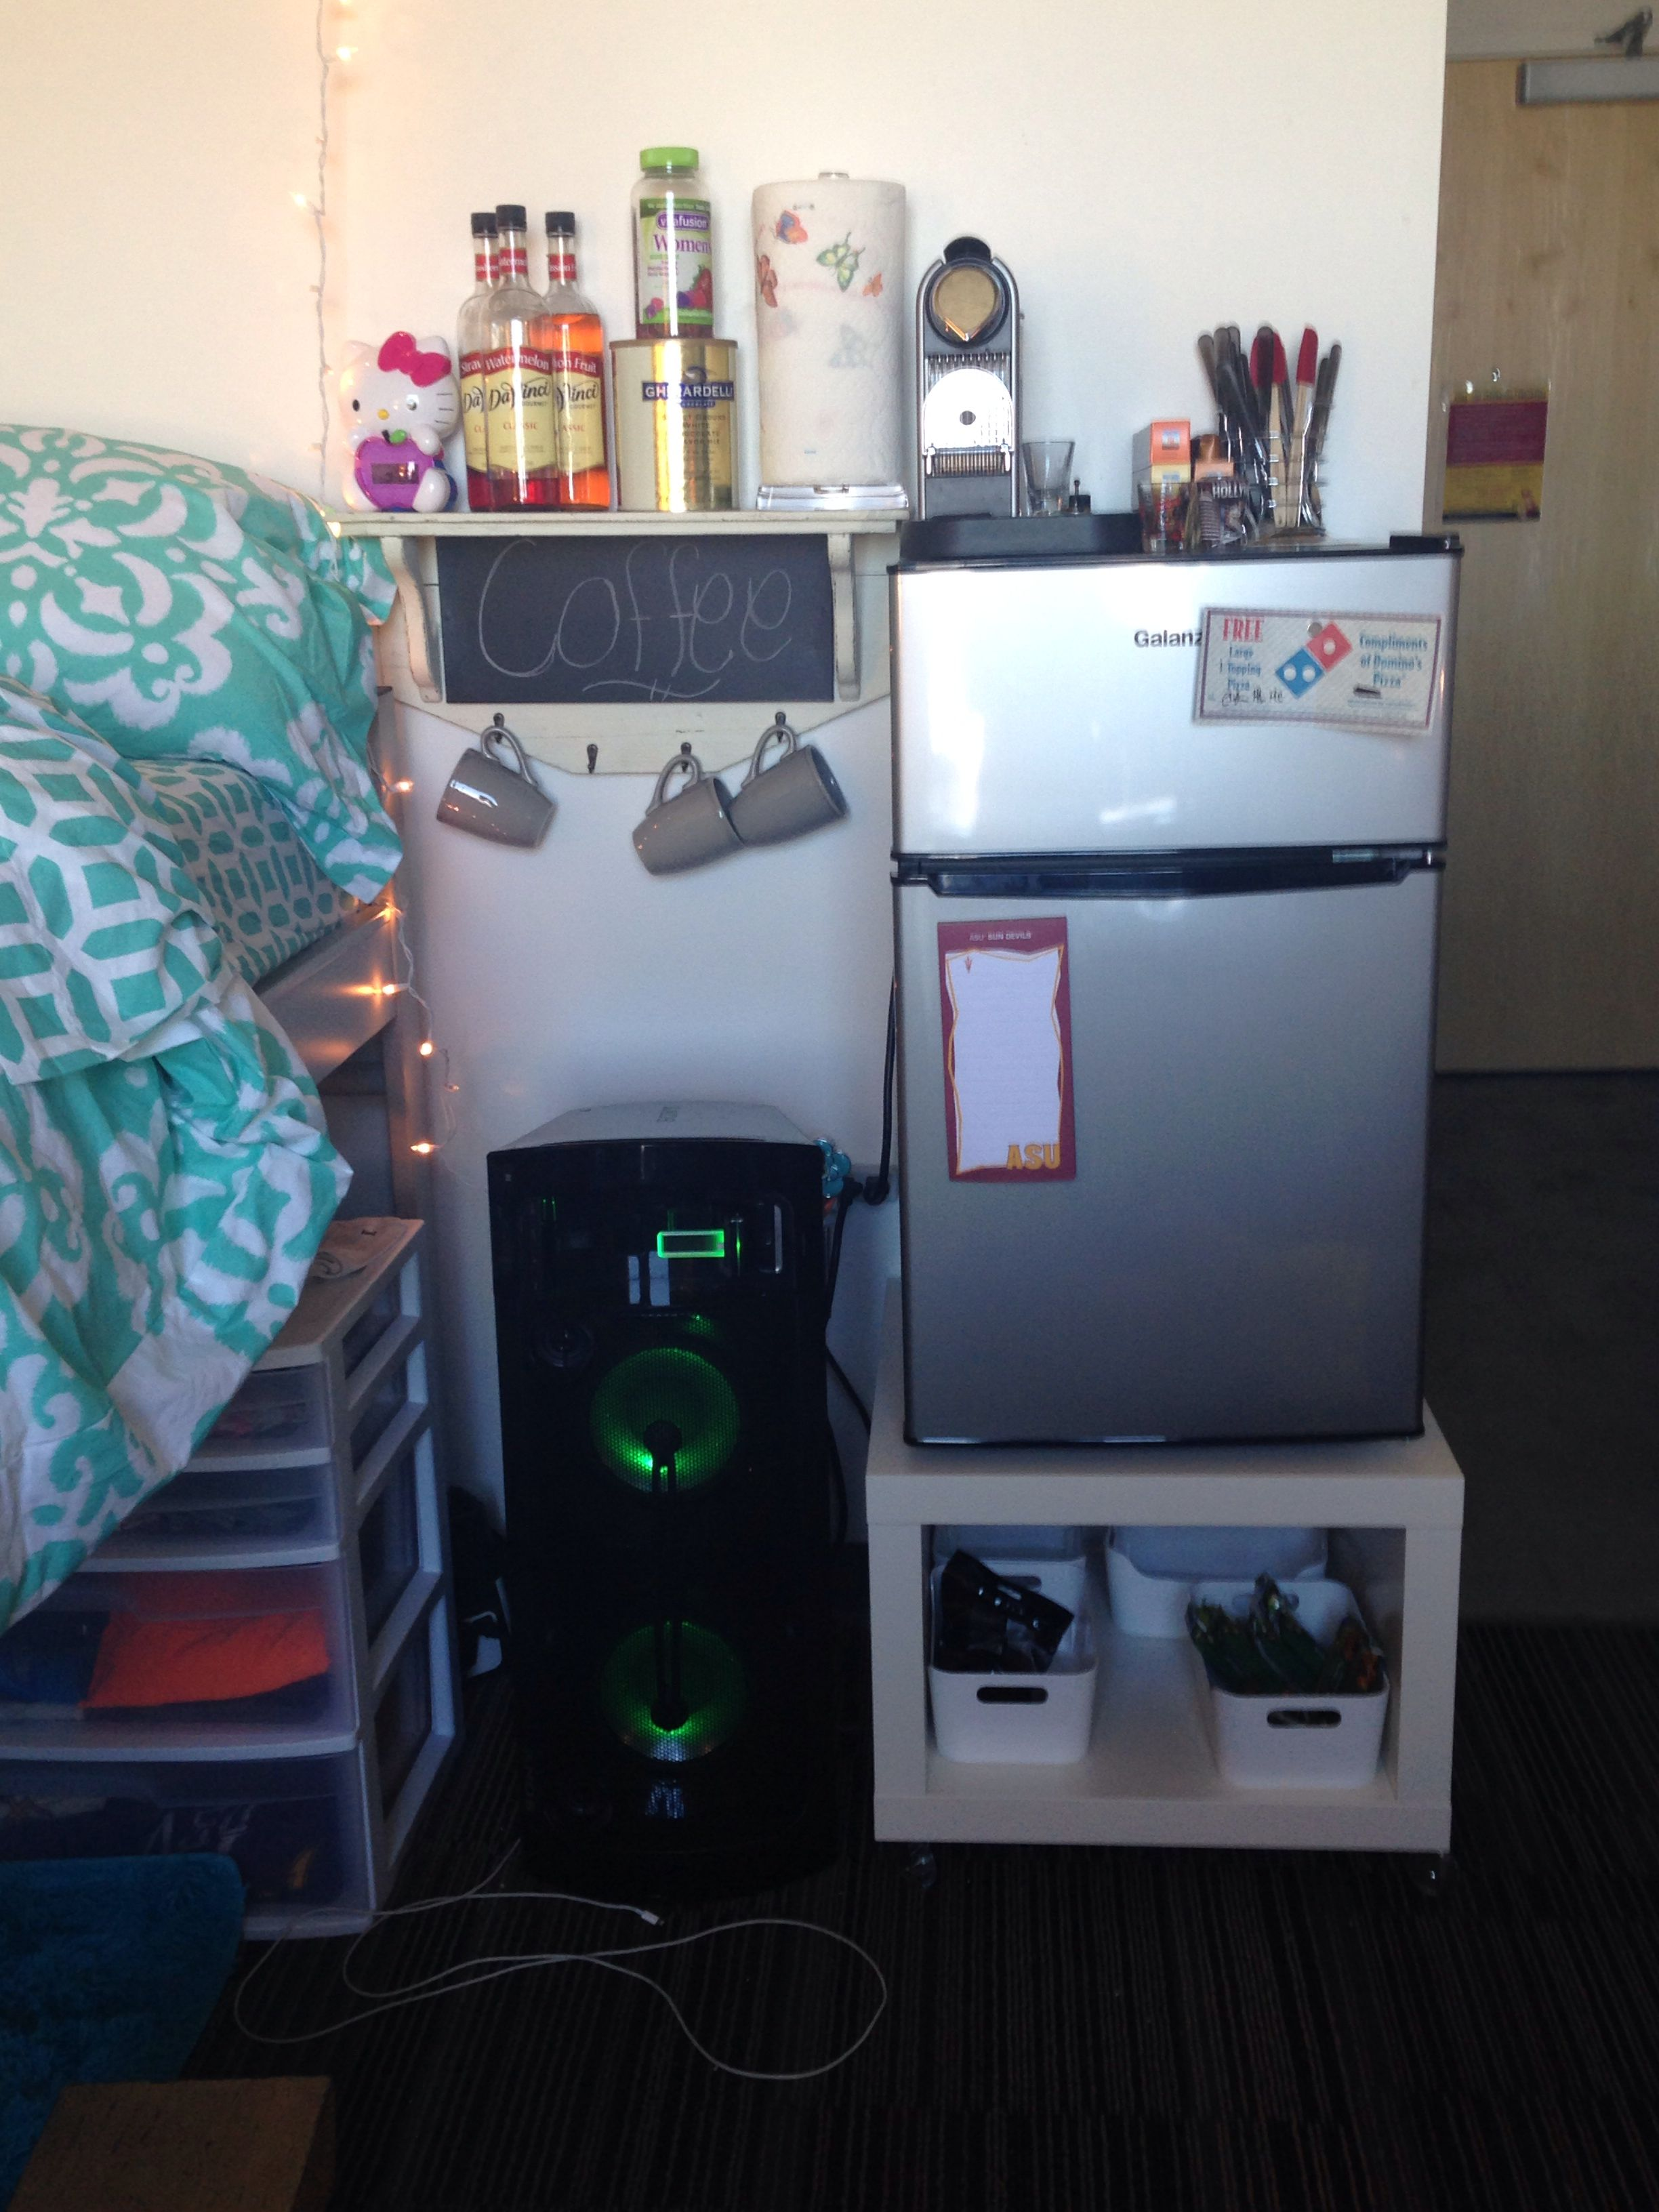 Putting A Table Underneath Your Mini Fridge To Maximize Dorm Space Table From Ikea College Design Organizat College Bound Cool Stuff First Year Of College